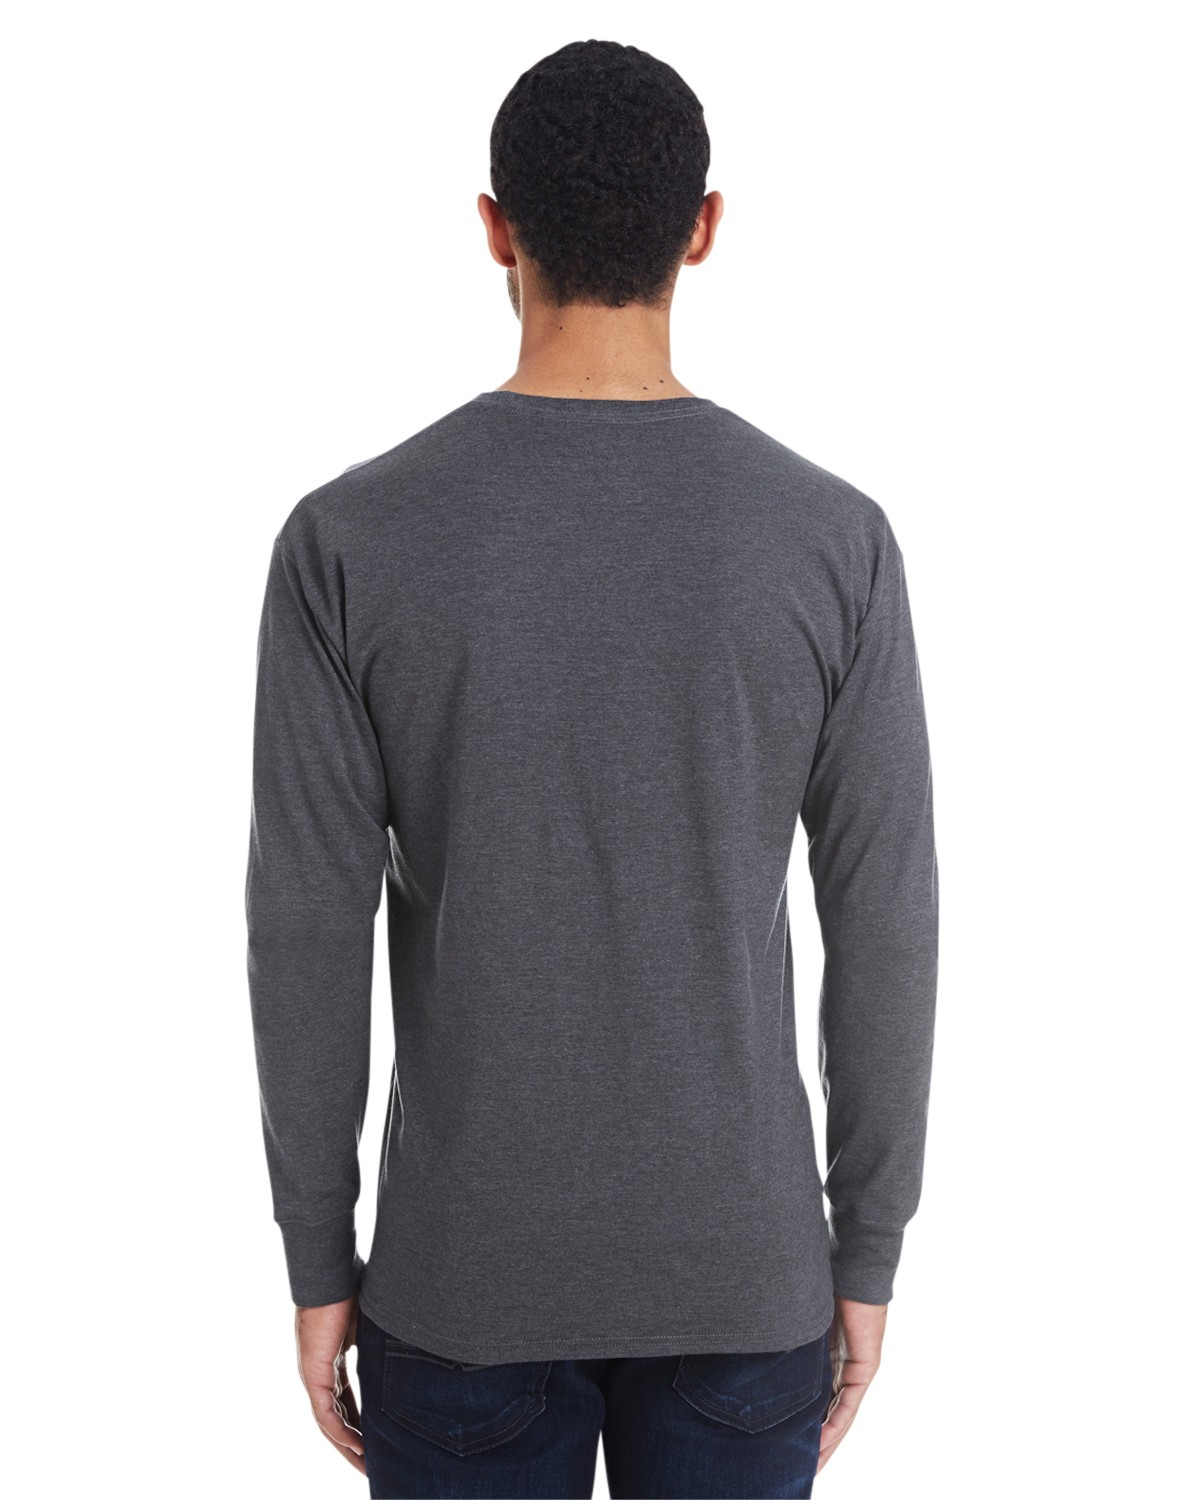 42L0 Hanes CHARCOAL HEATHER